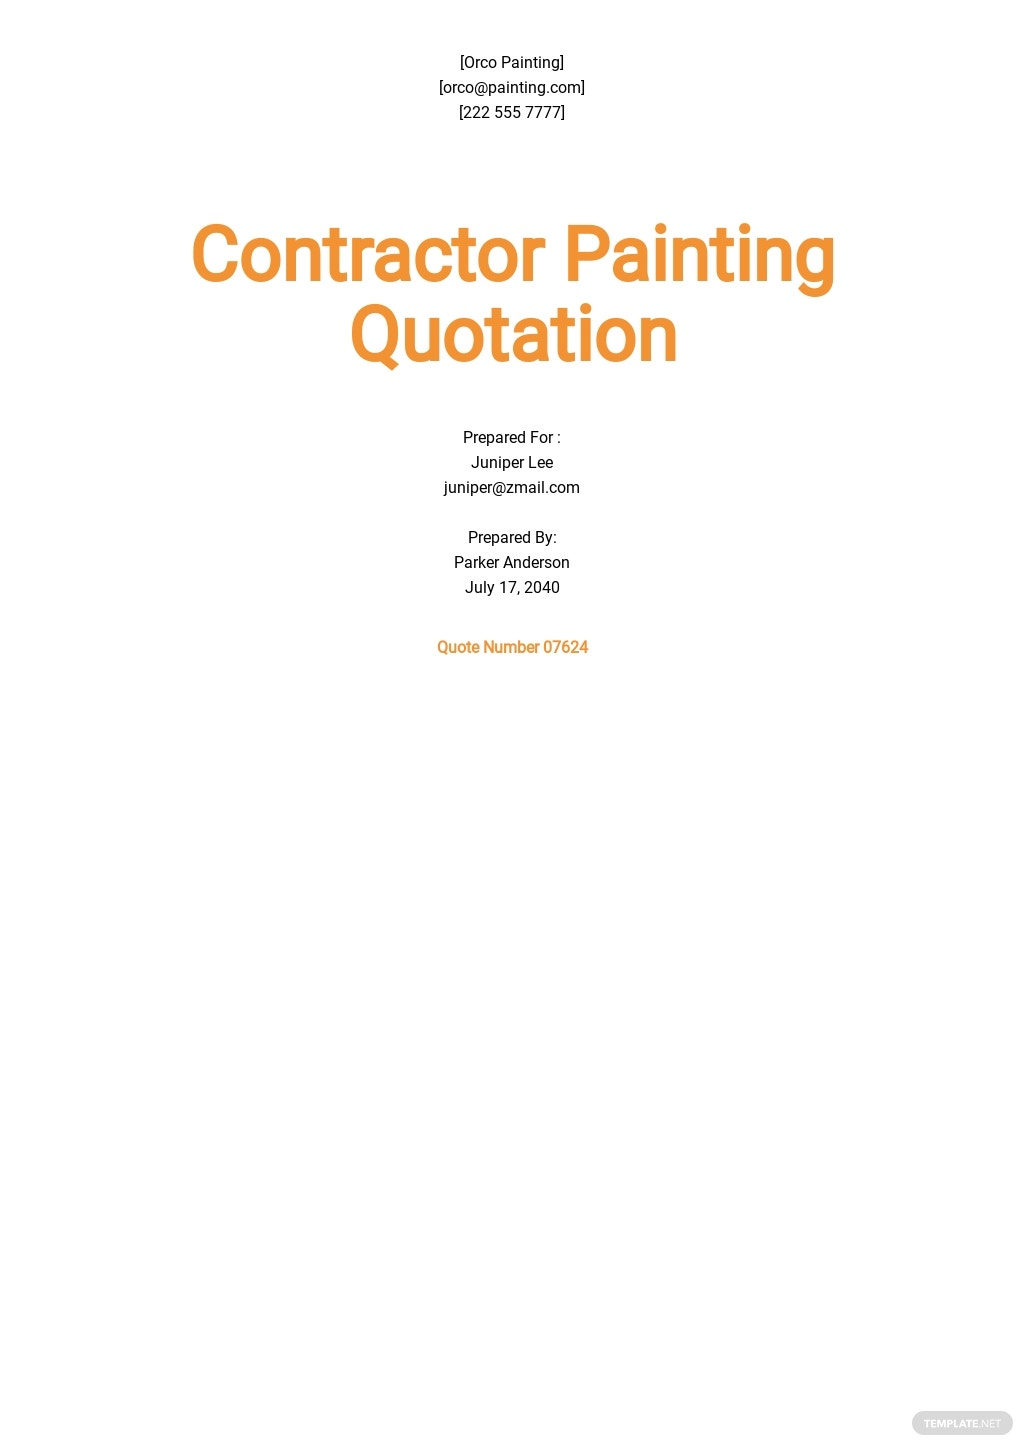 Contractor Painting Quotation Template